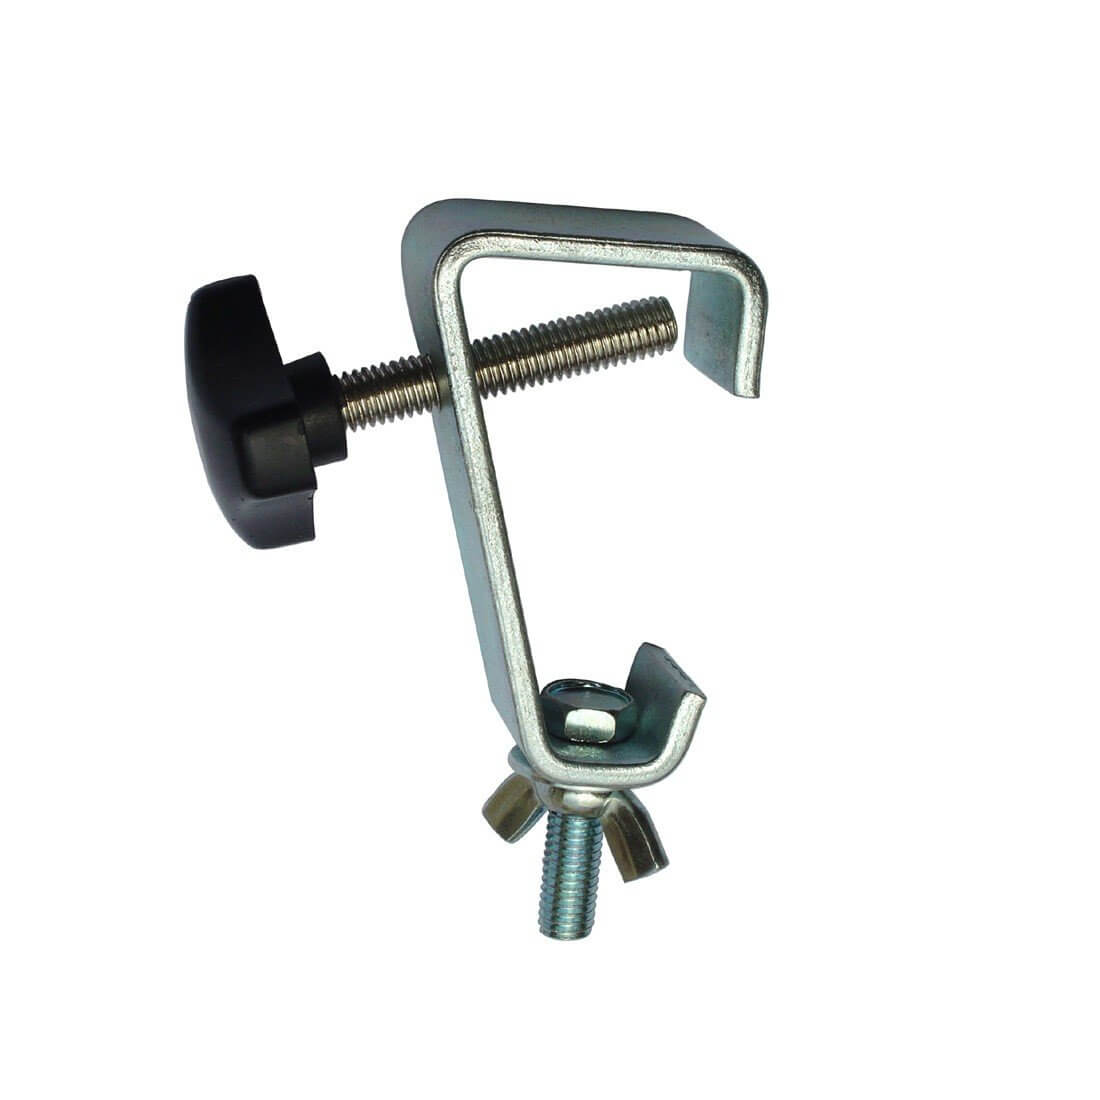 ADJ DuraTruss Dura Clamp Lightbridge Hook Clamp